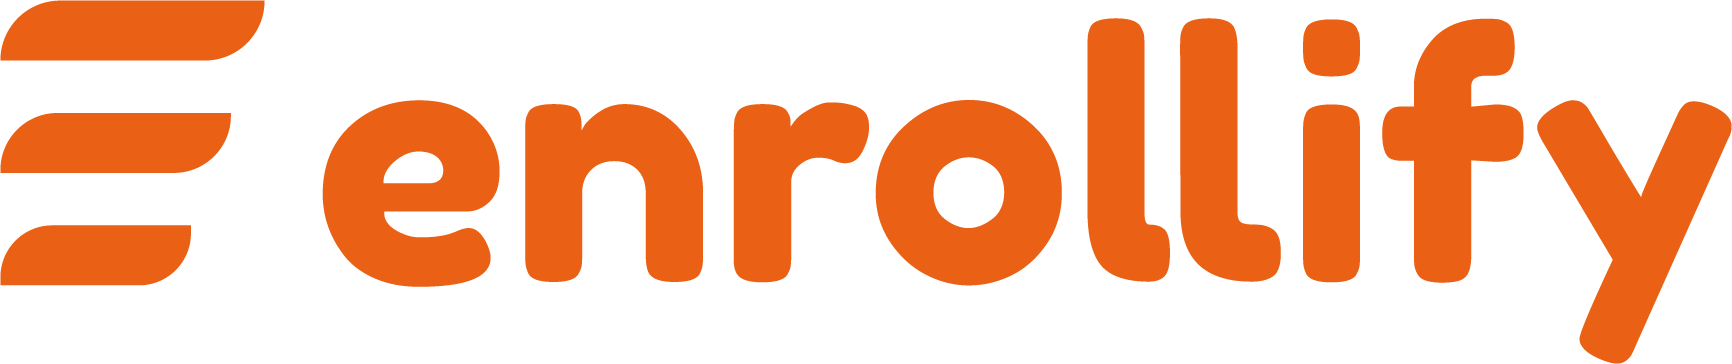 Enrollify Orange